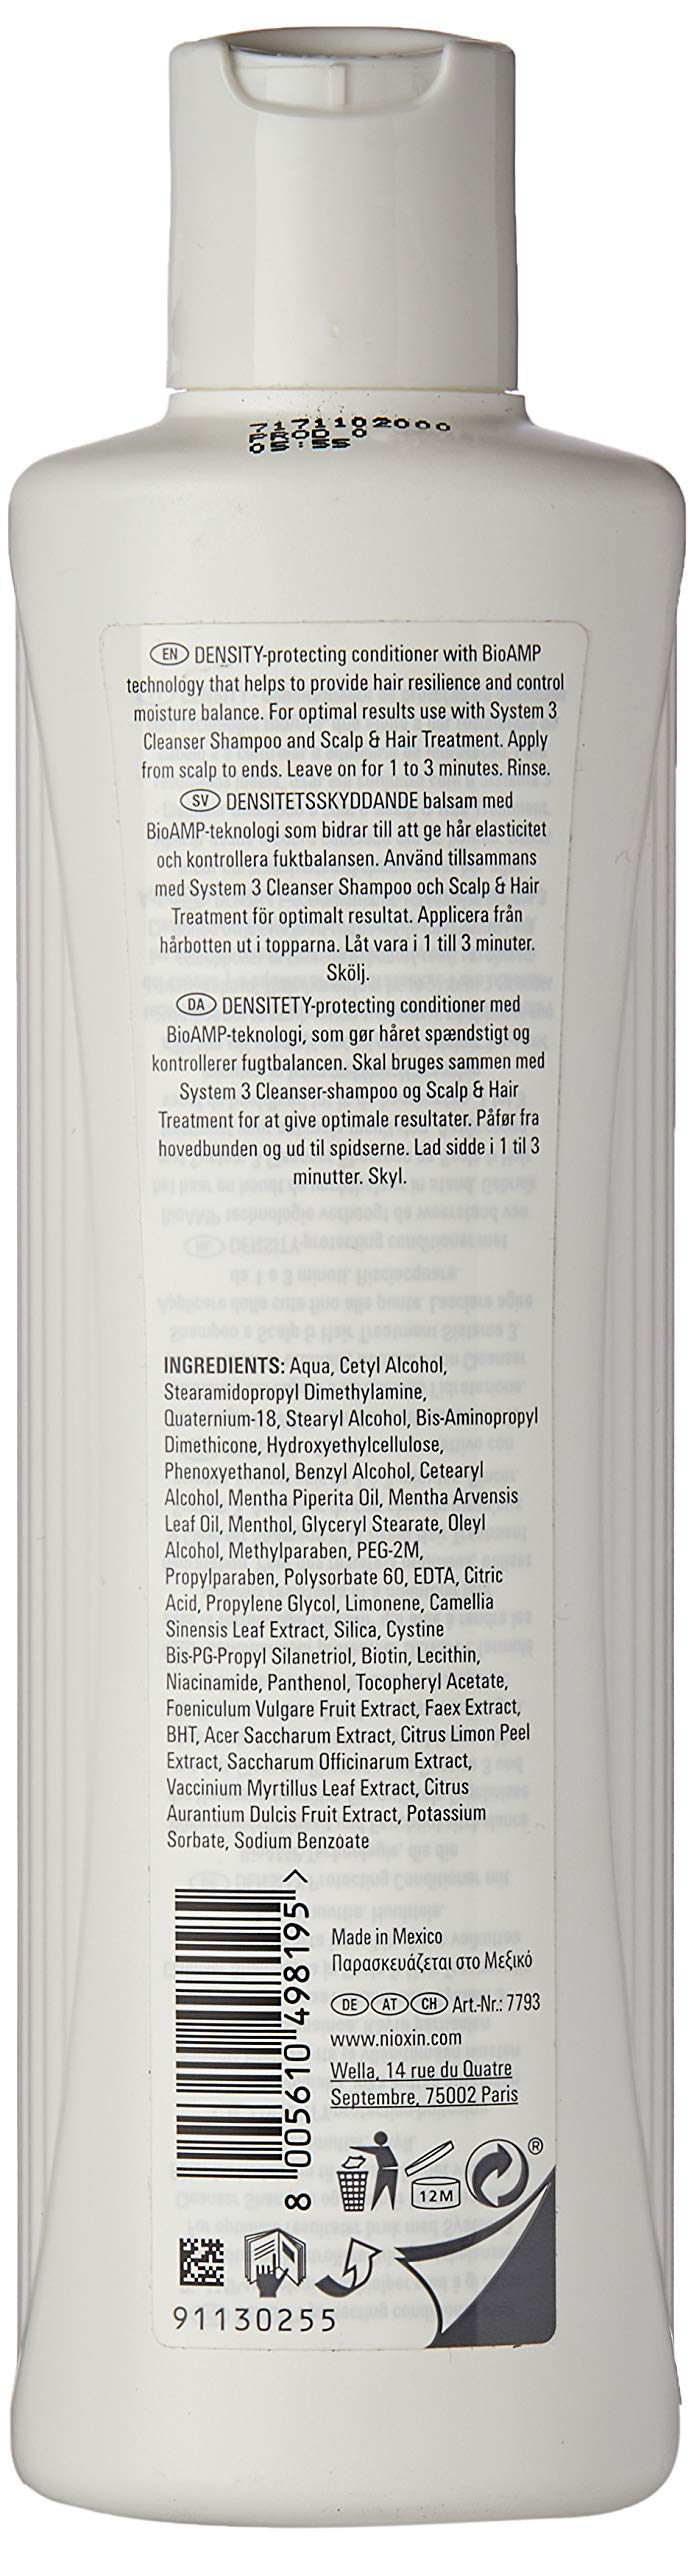 Nioxin System 3 Scalp Therapy Revitalizing Conditioner with Light Thinning 300ml